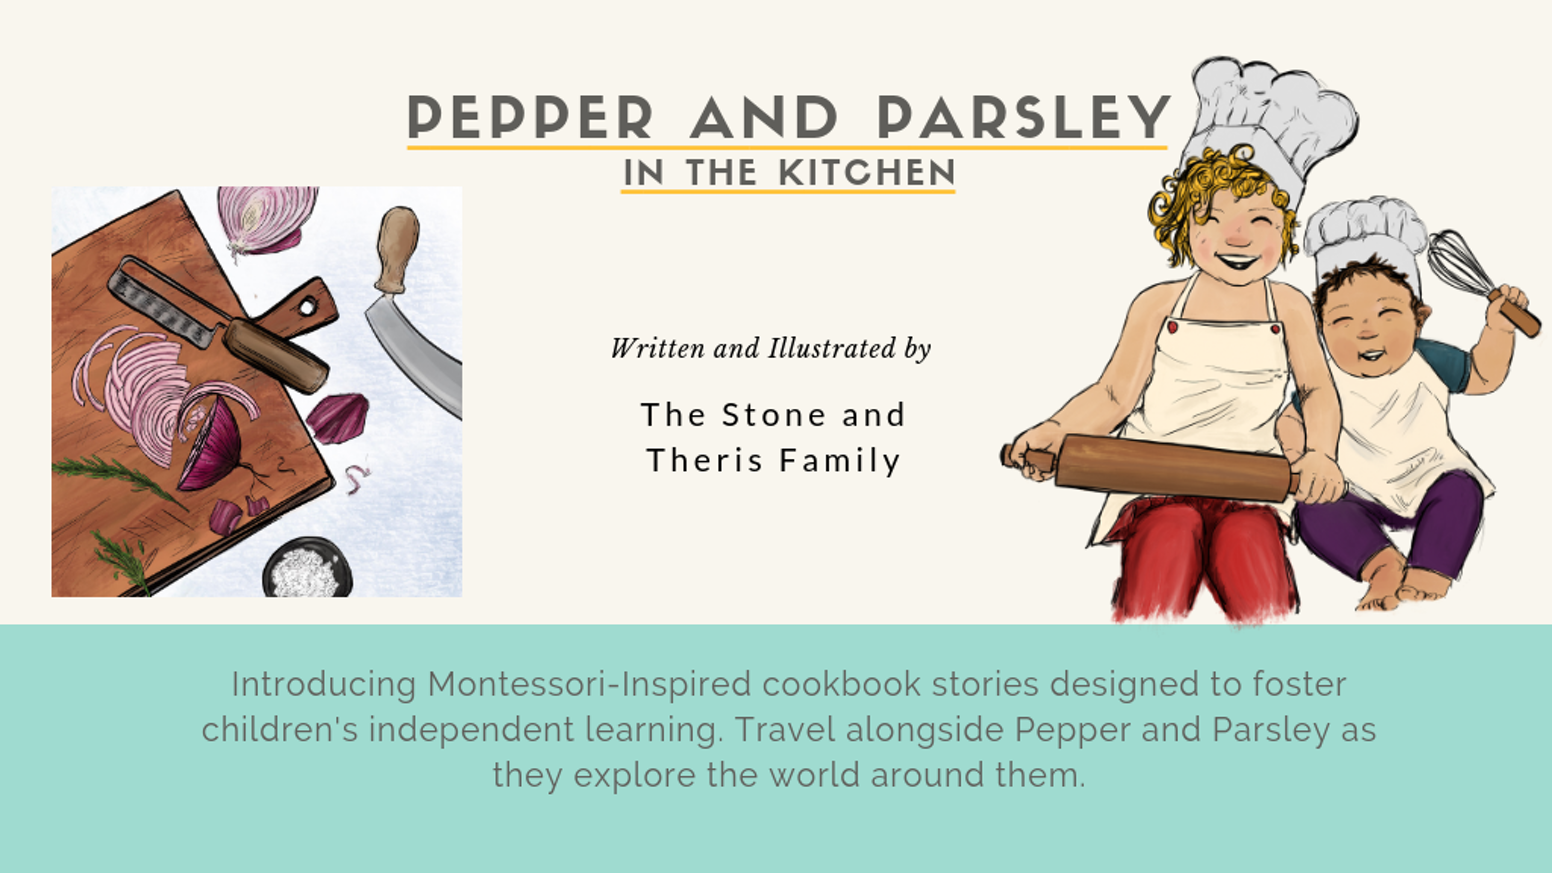 The first ever Montessori-inspired children's story cookbook